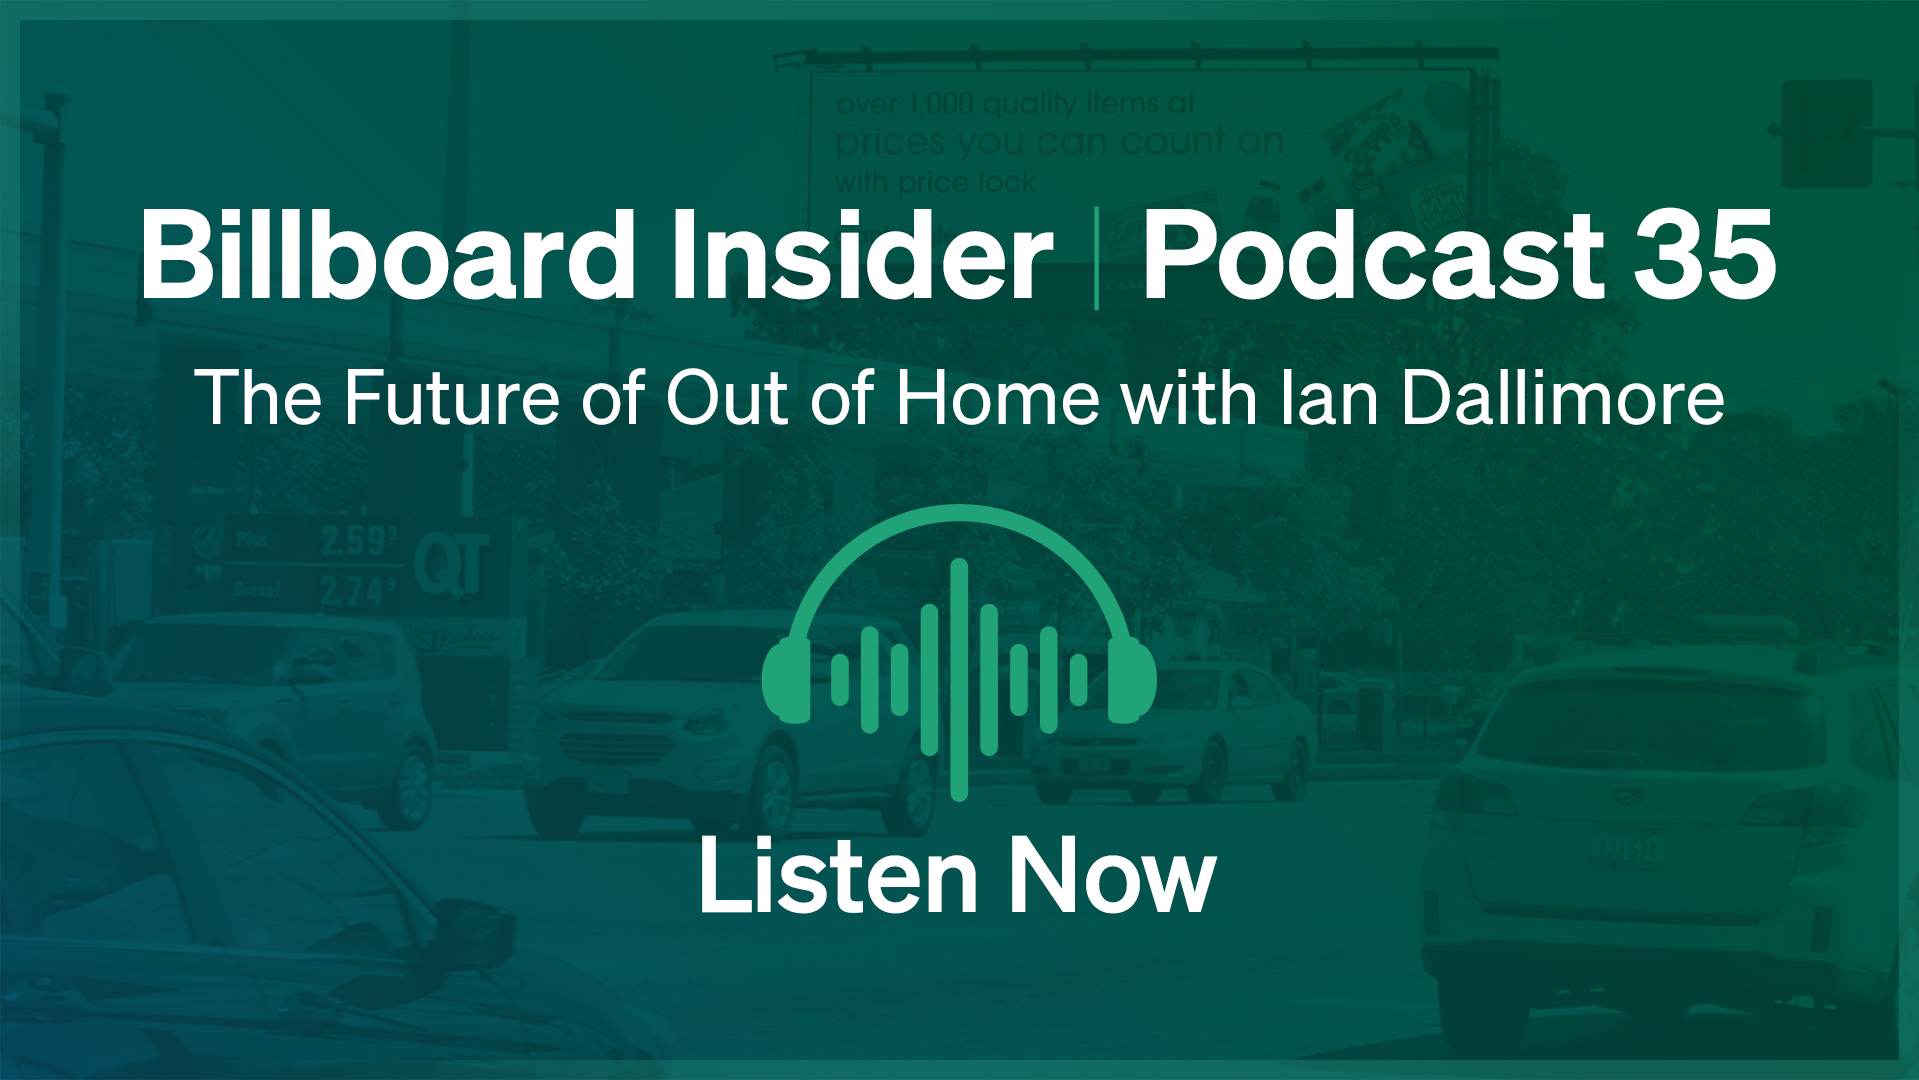 Billboard Insider: The Future of Out of Home with Ian Dallimore